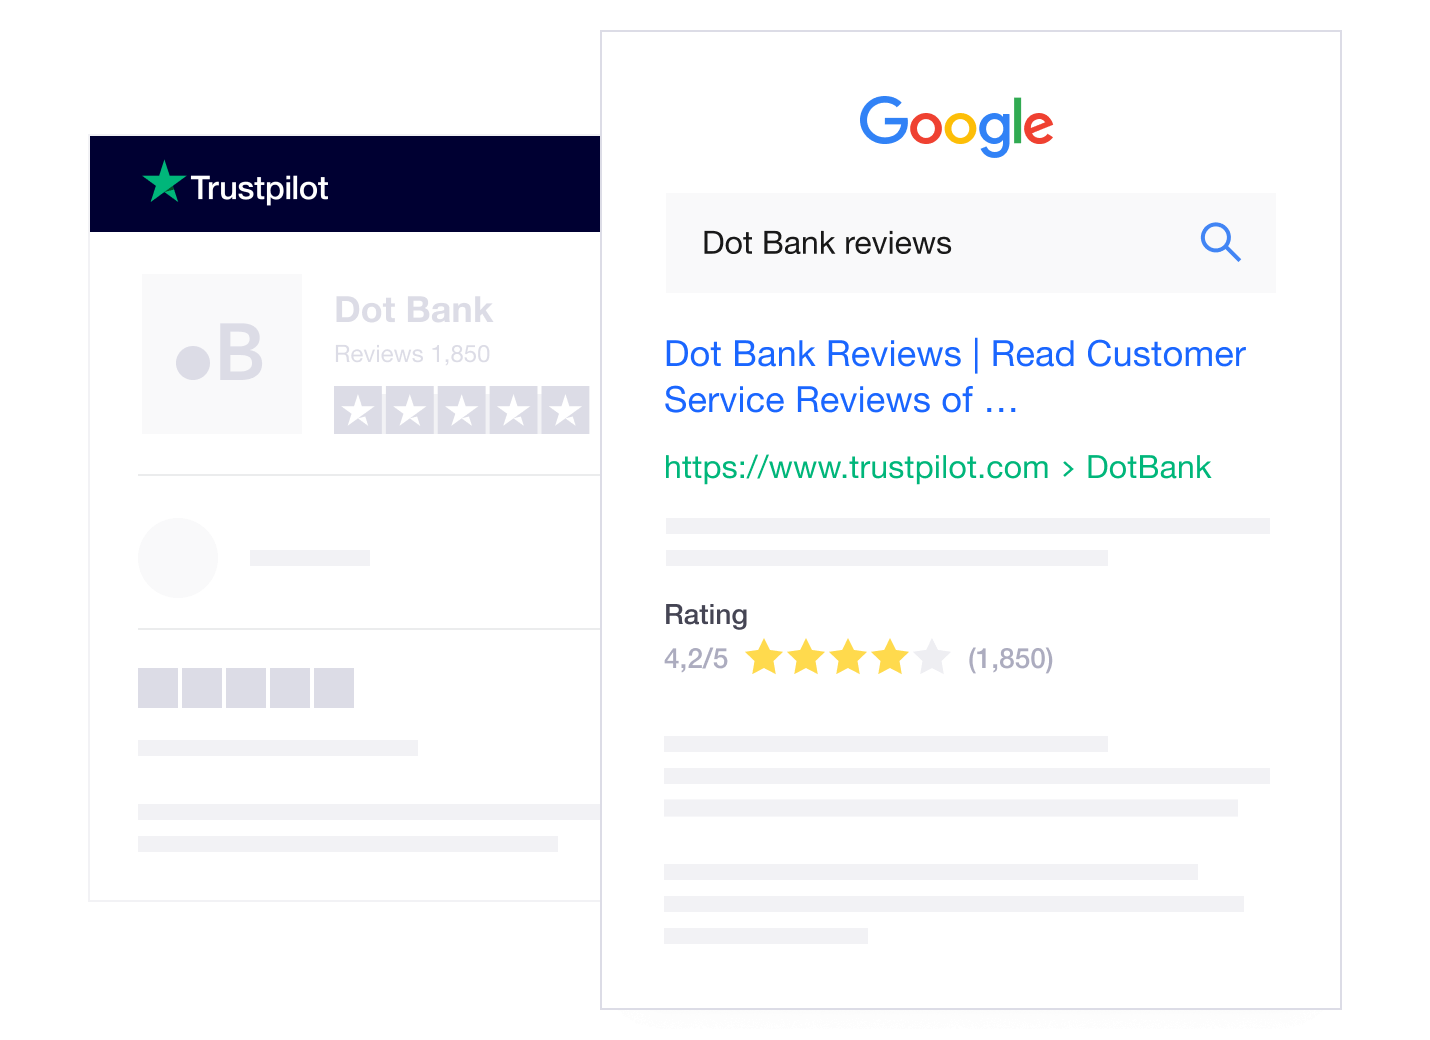 Trustpilot company profile page and Google star rating